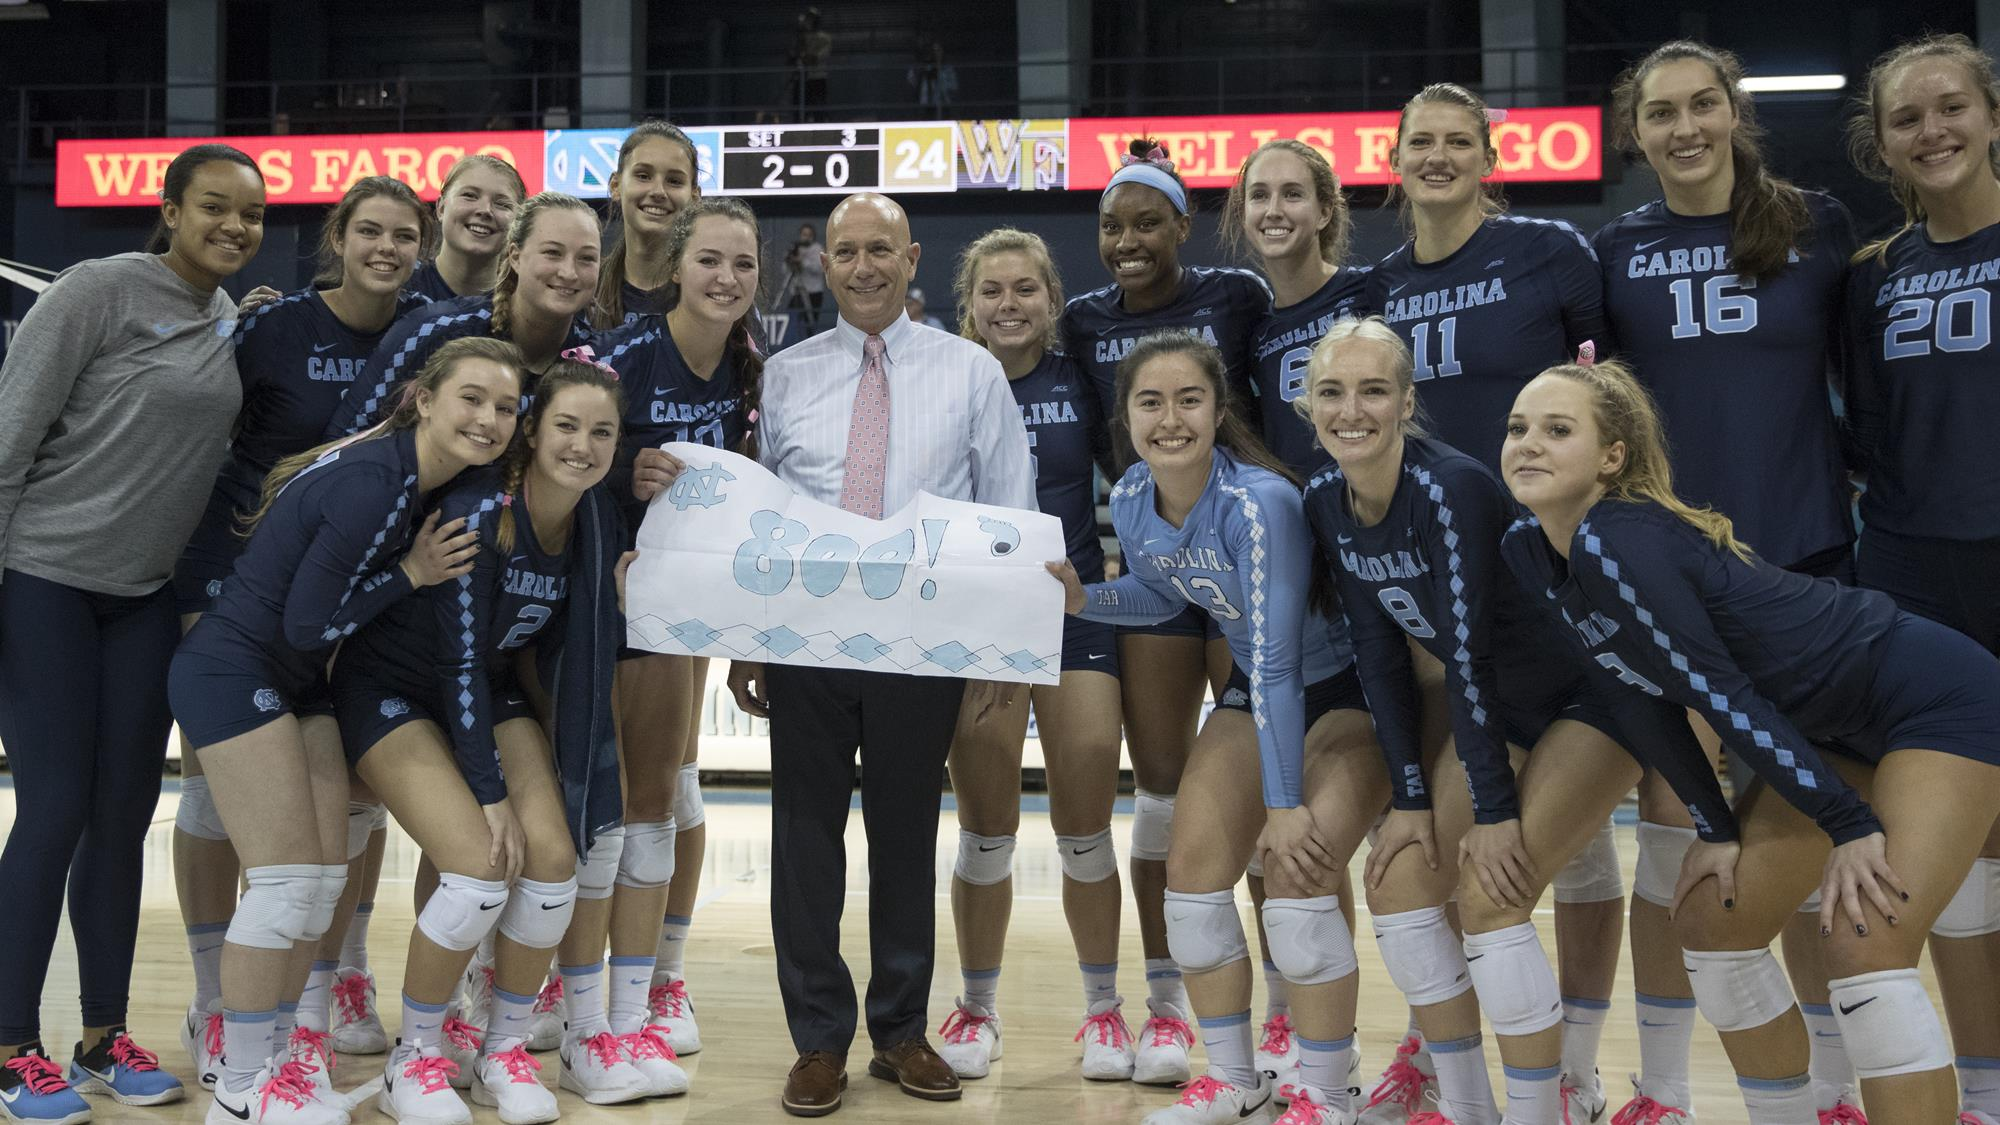 Unc Volleyball Sweeps Wake Forest To Snap 10 Match Losing Skid Hand Head Coach Joe Sagula 800th Career Victory Chapelboro Com